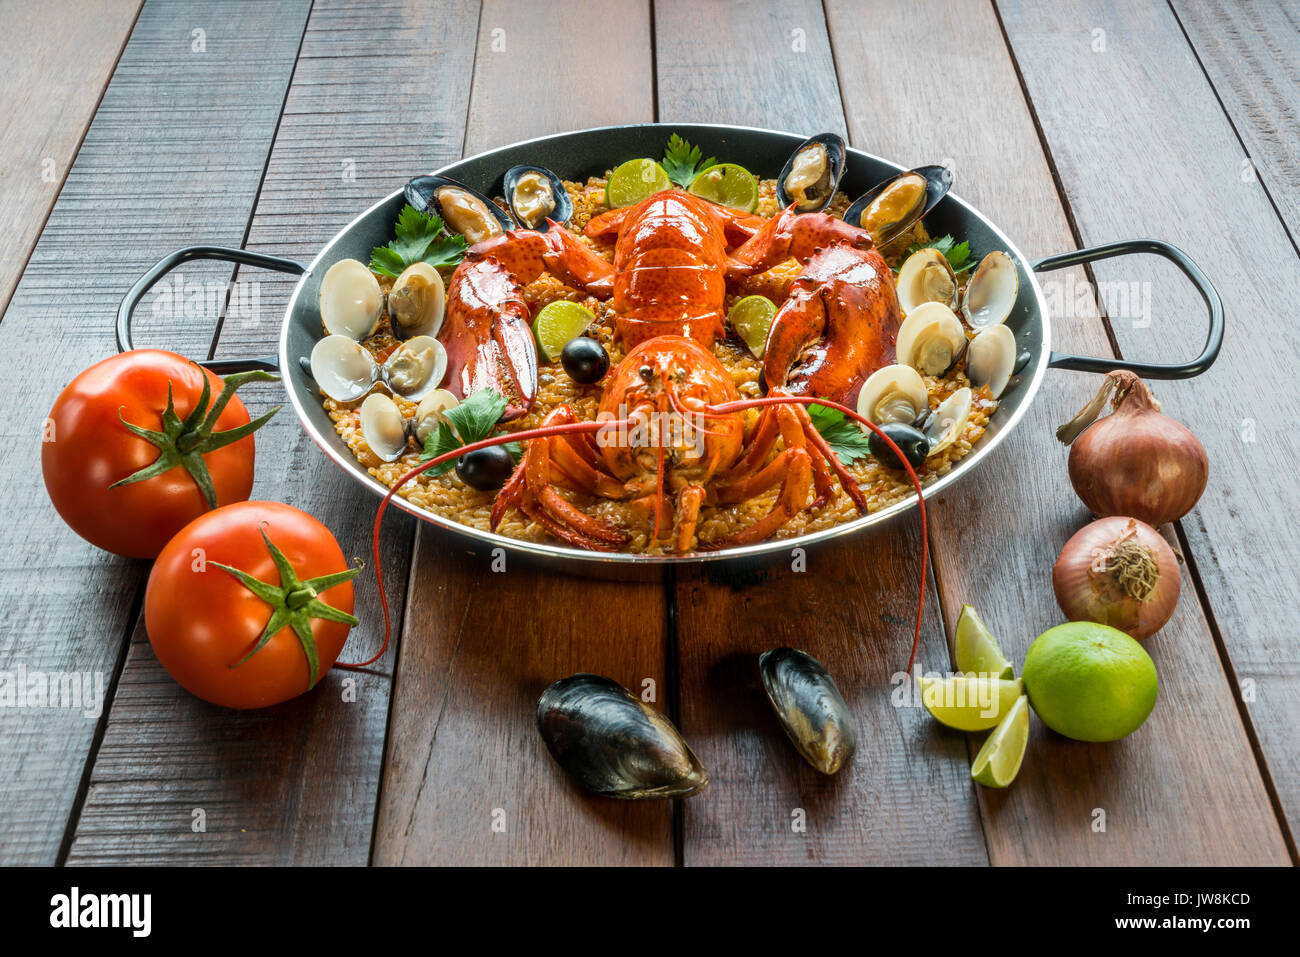 Gourmet seafood Valencia paella with fresh langoustine, clams, mussels and squid on savory saffron rice with peas Stock Photo